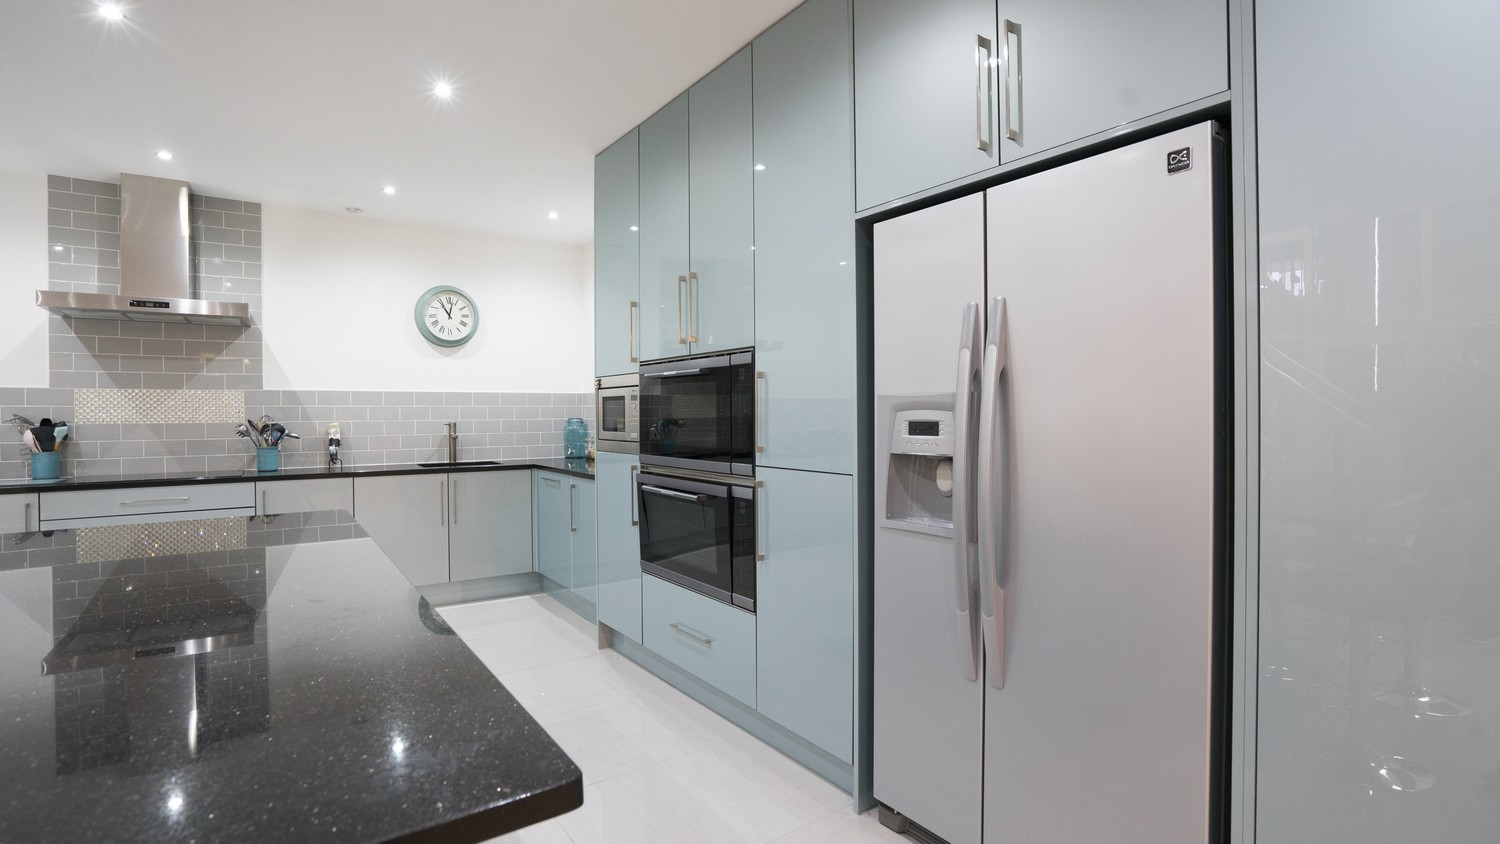 Floor to ceiling feature larder units with integrated appliances and large fridge/freezer.